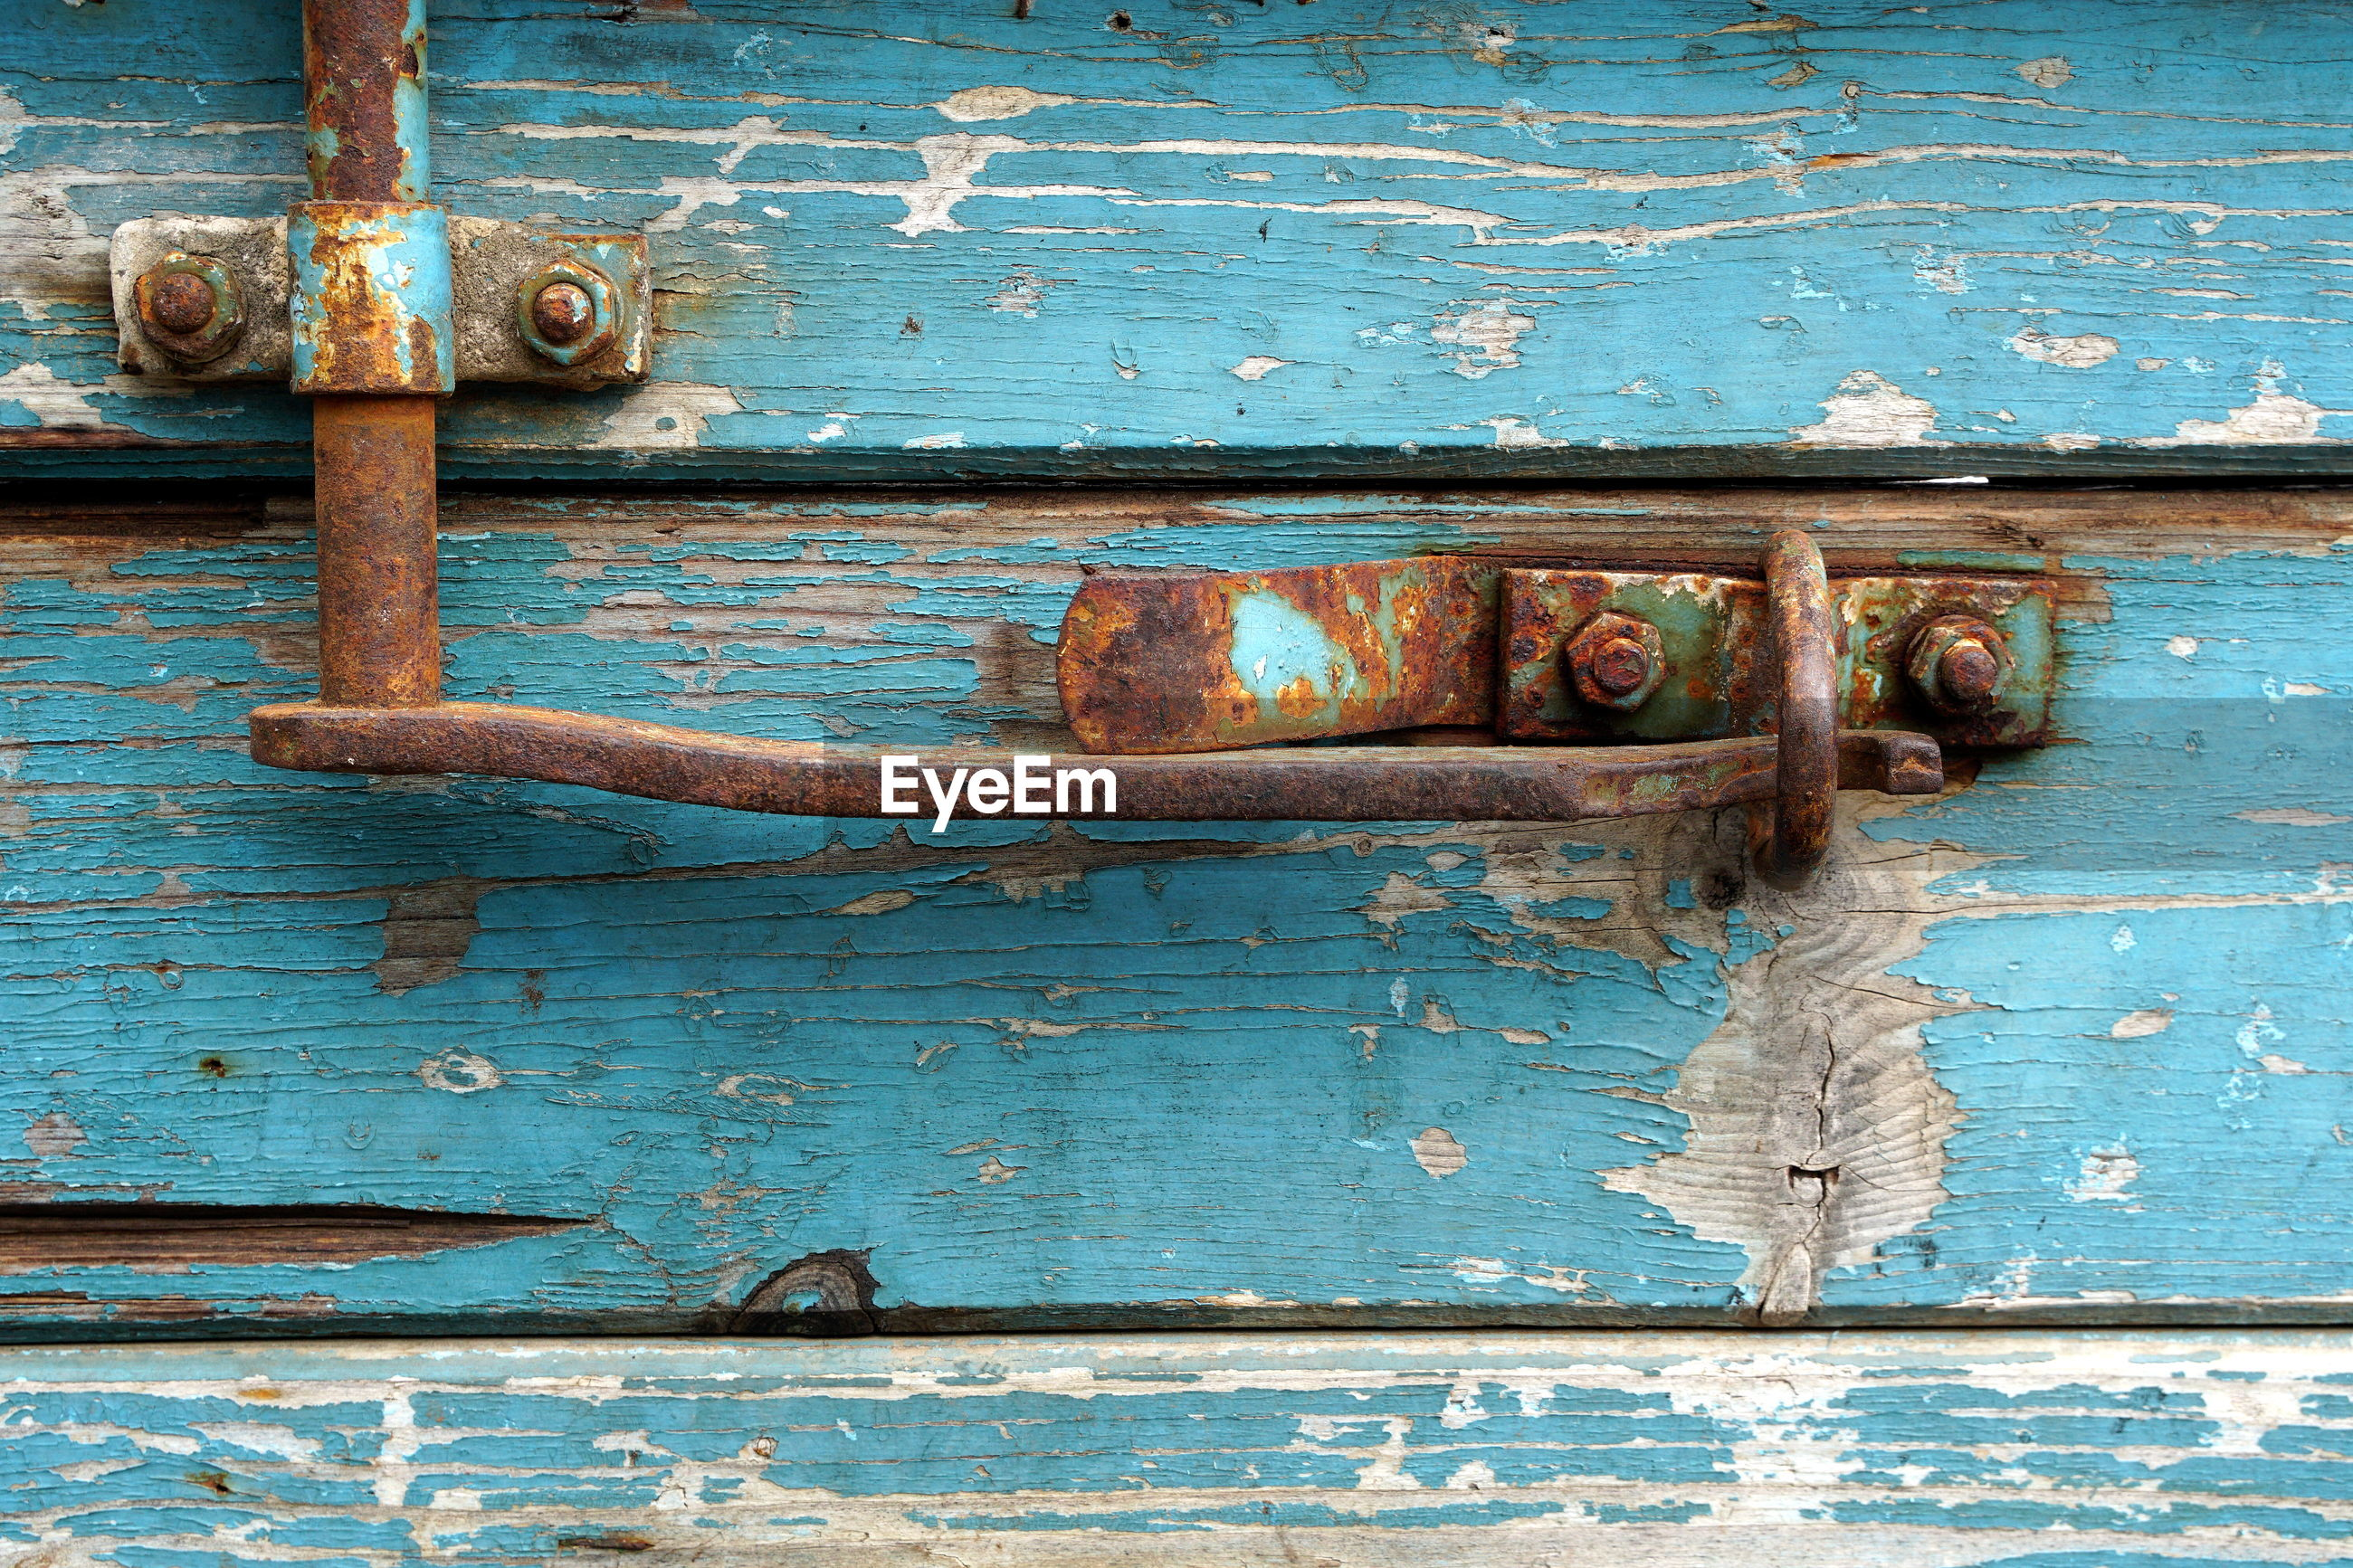 FULL FRAME SHOT OF RUSTY METAL DOOR WITH OLD WEATHERED WOODEN WALL